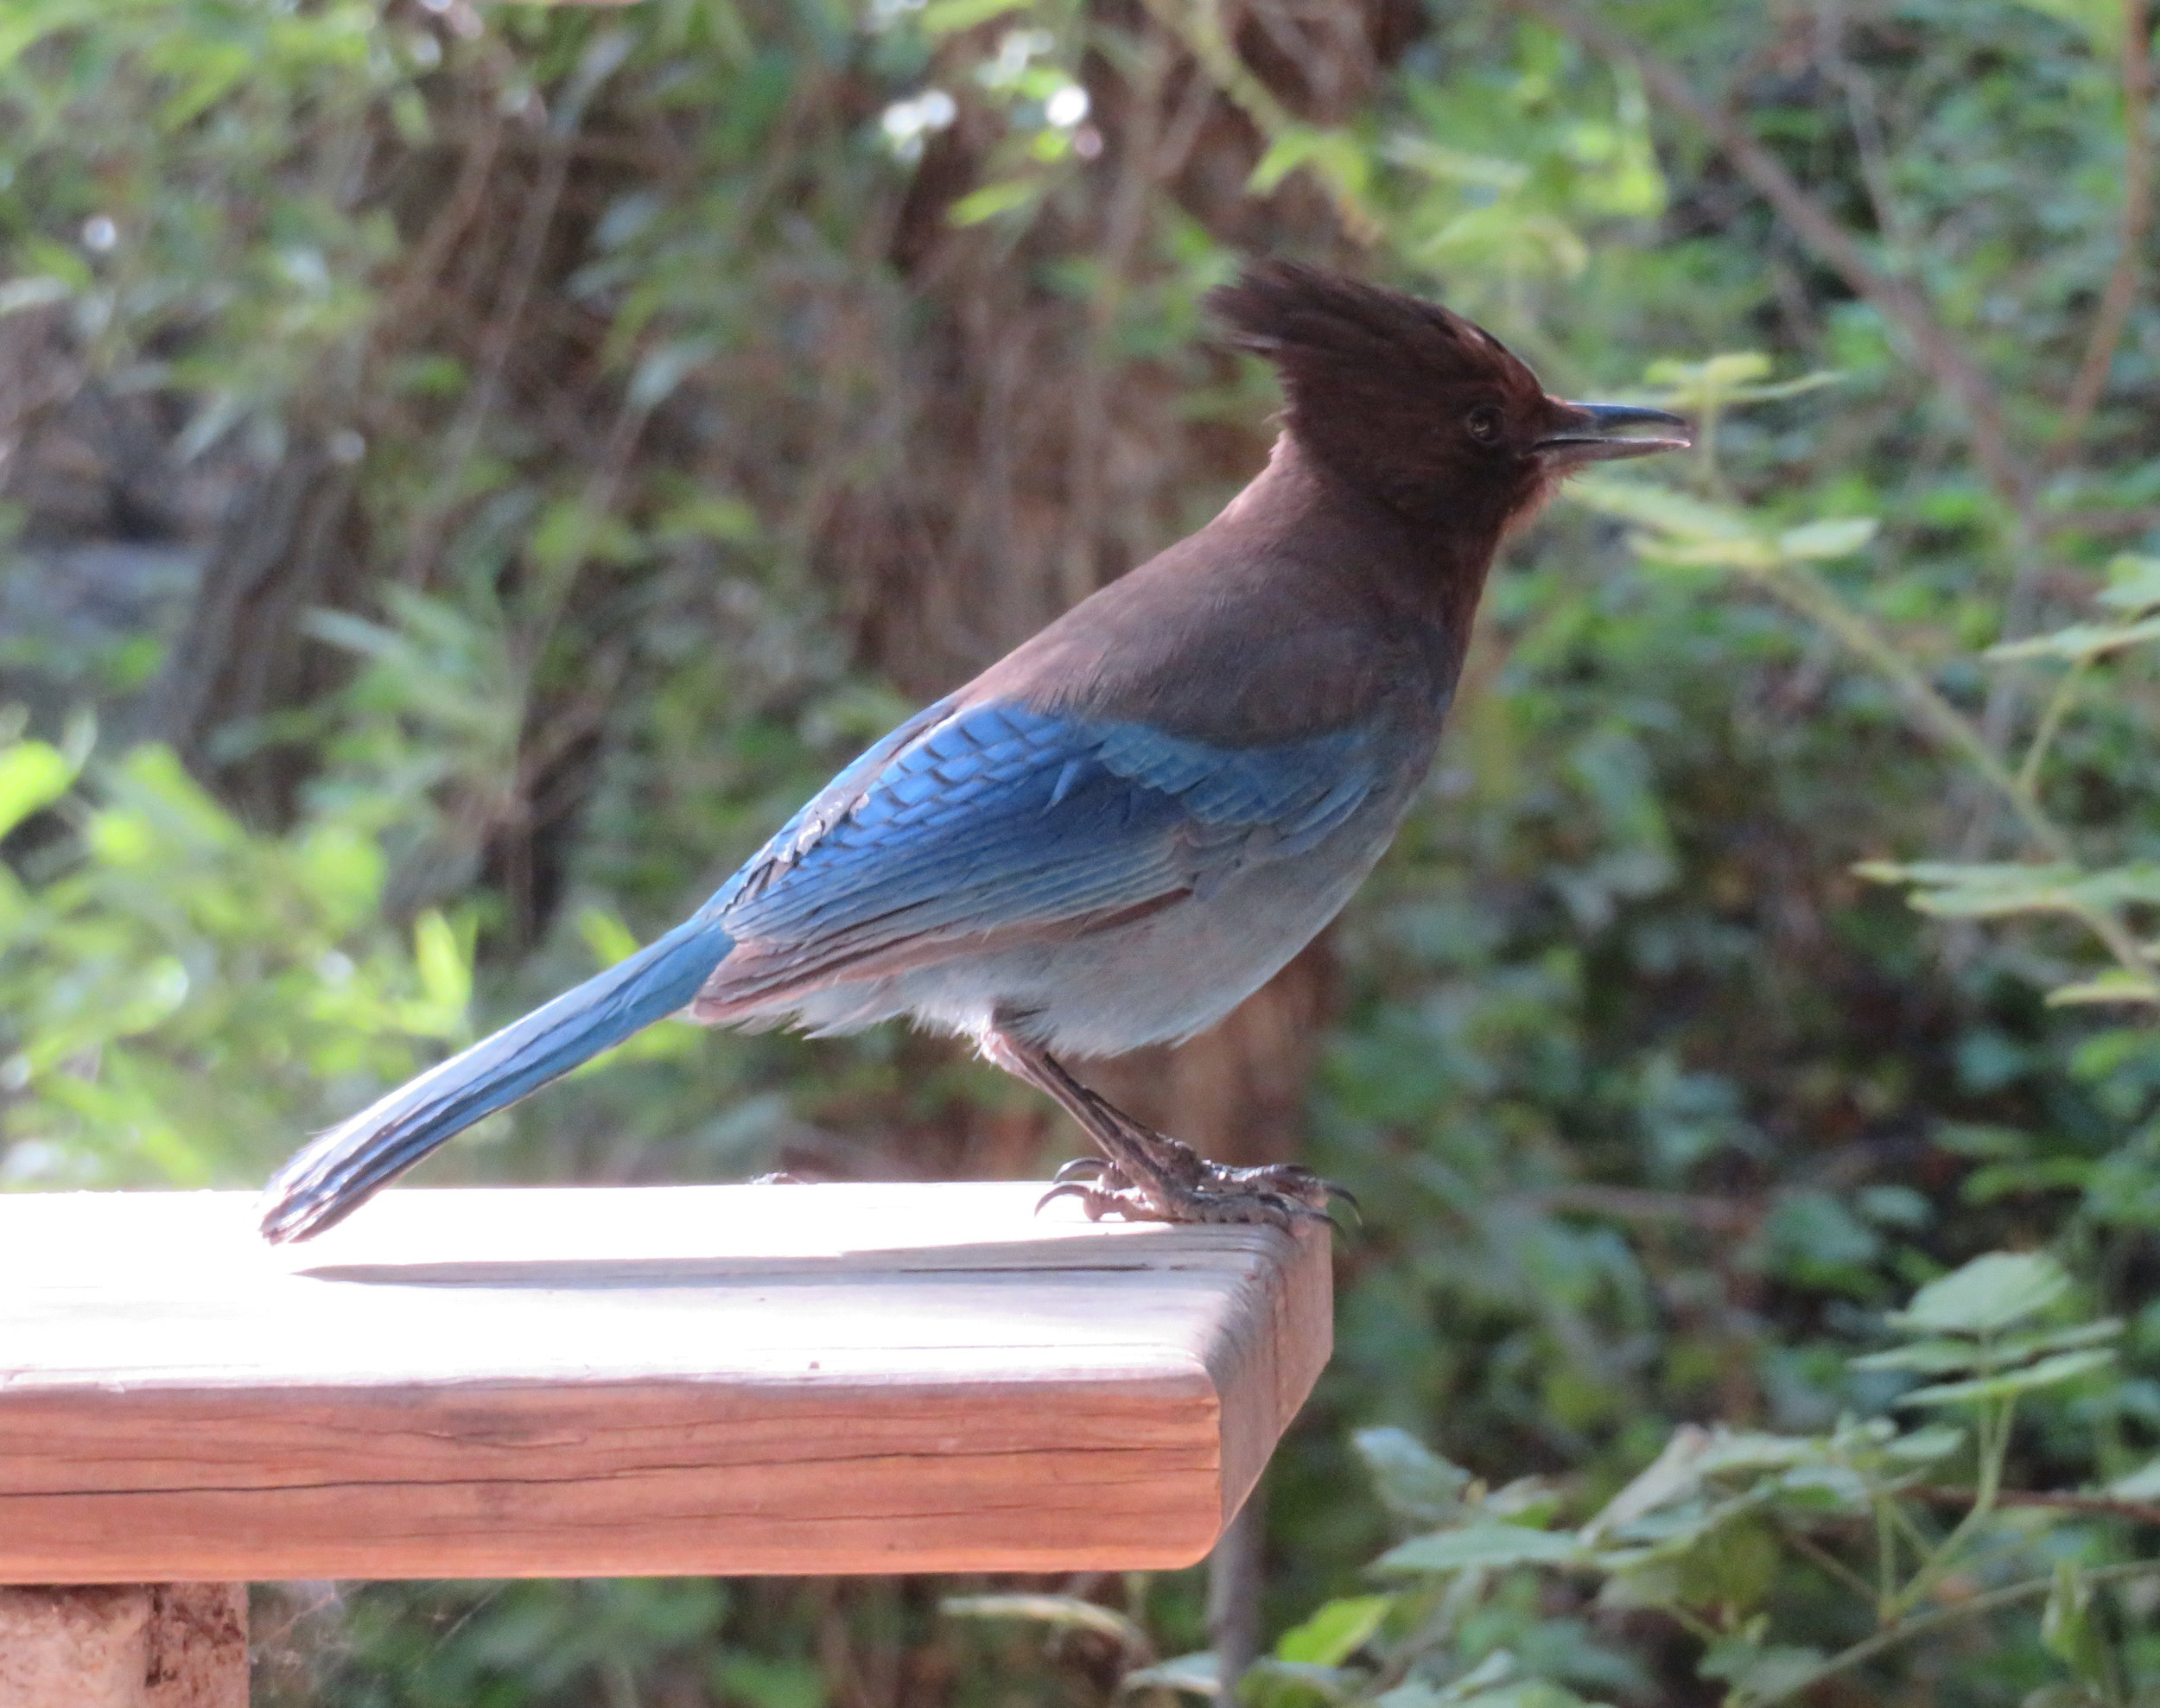 A low-flying Steller's jay buzzed Blue's roof before landing on our picnic table.